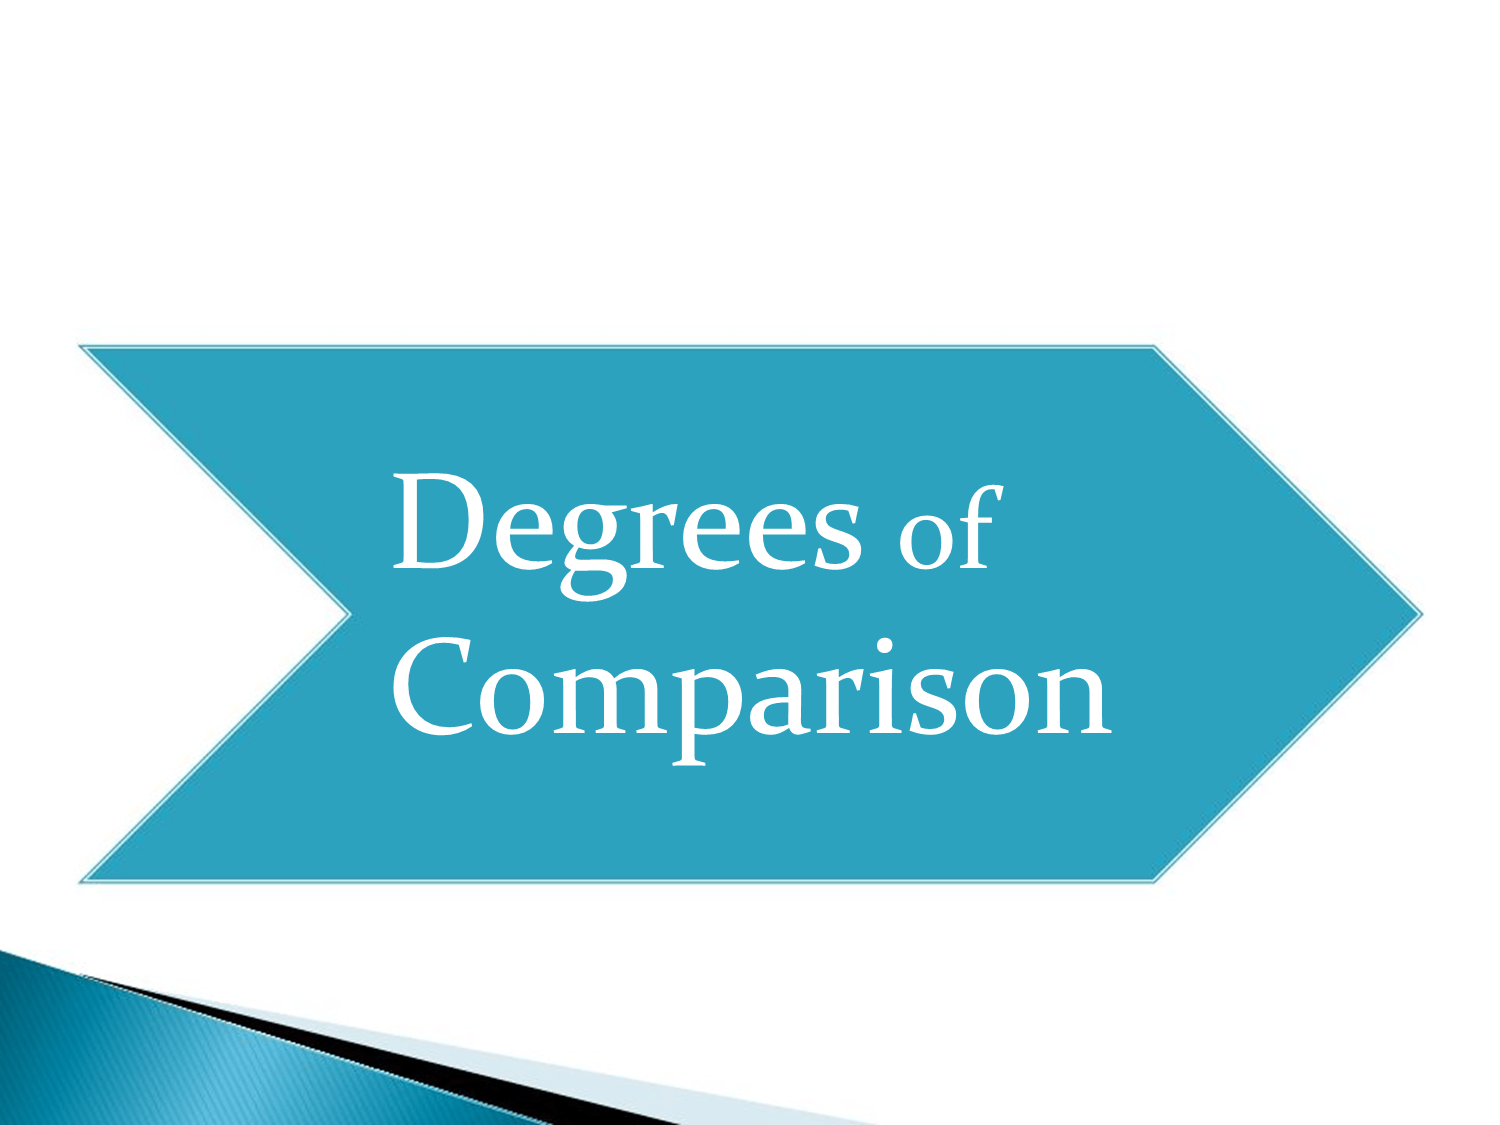 Quiz on degrees of comparison